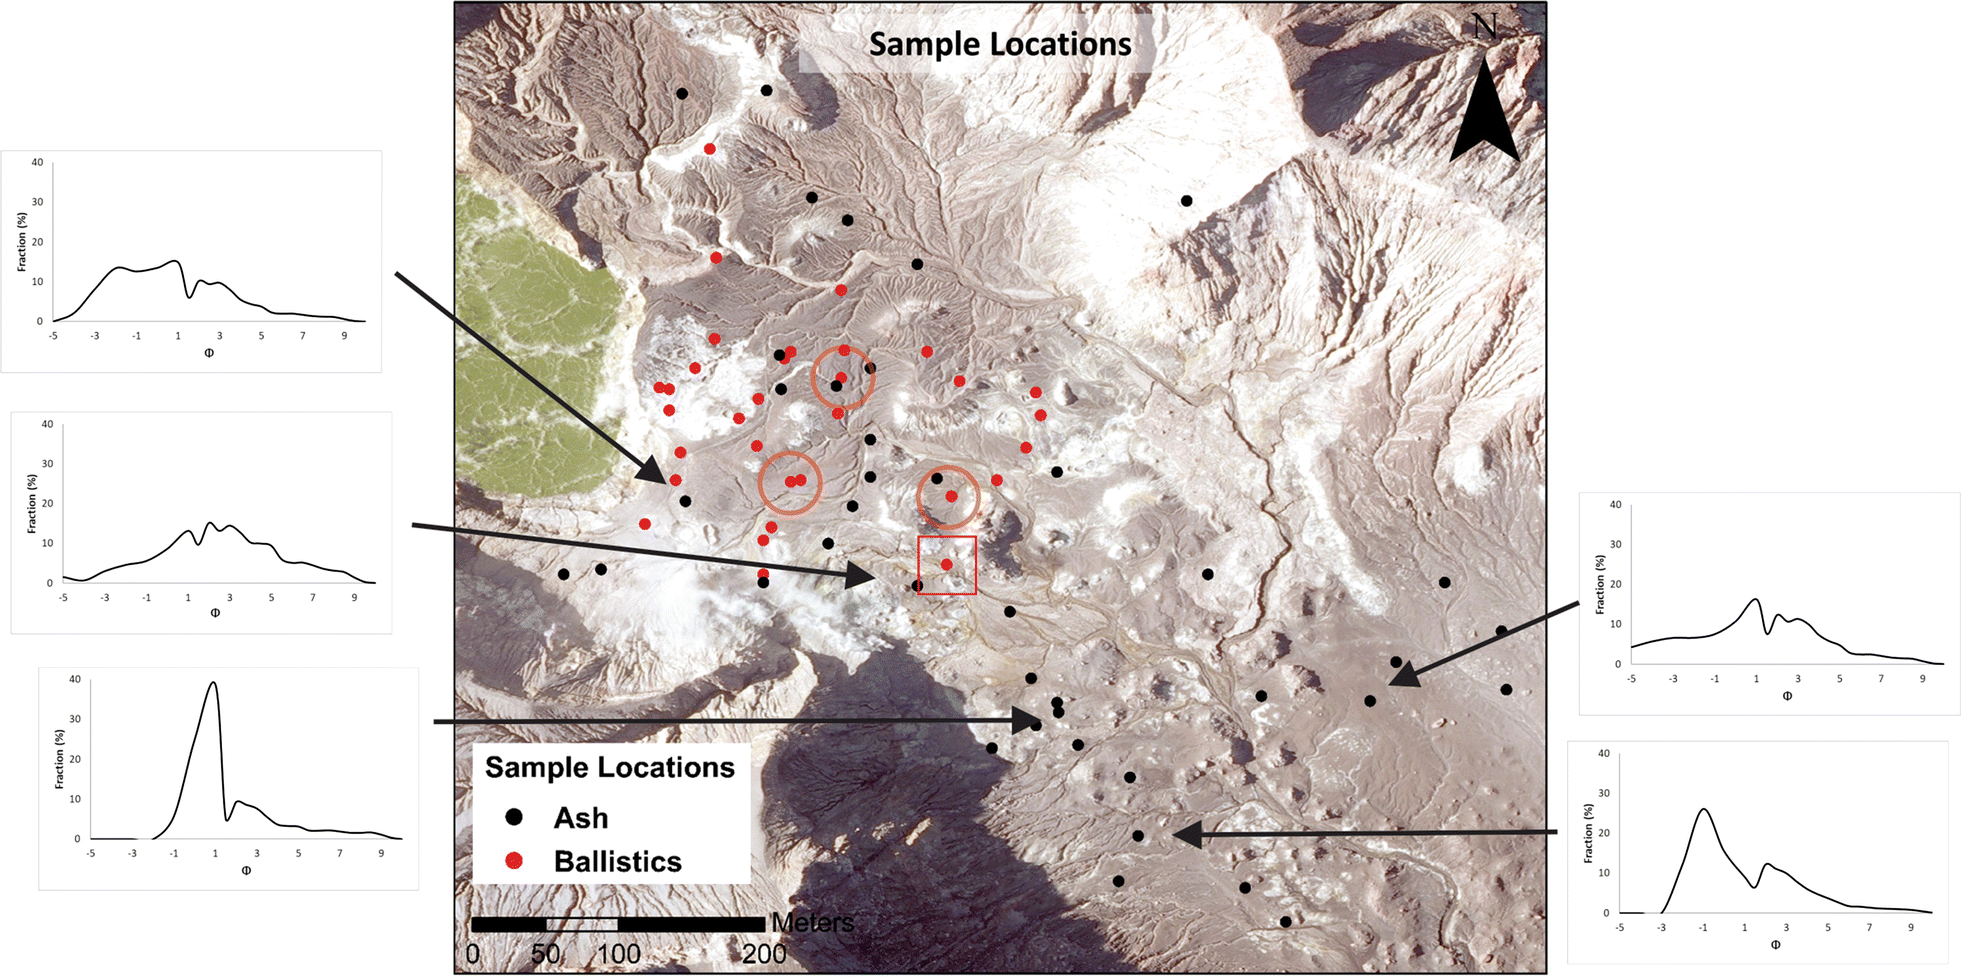 Phreatic eruption dynamics derived from deposit analysis: a case